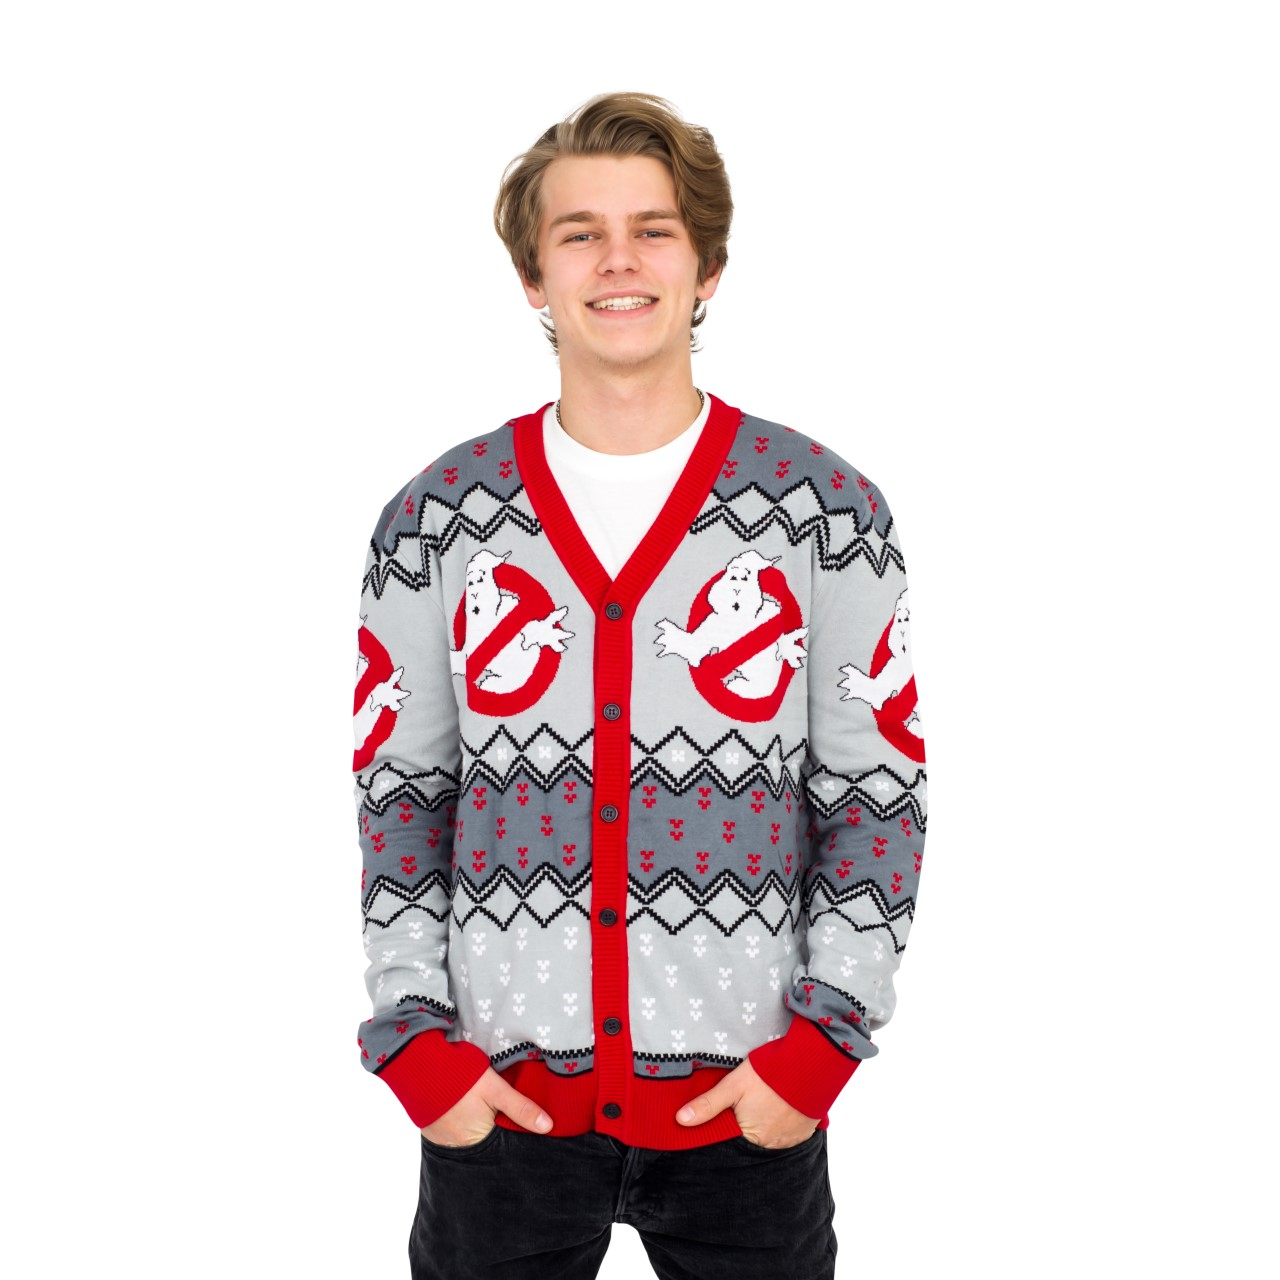 Ghostbusters Logo Ugly Christmas Cardigan Sweater,Ugly Christmas Sweaters | Funny Xmas Sweaters for Men and Women